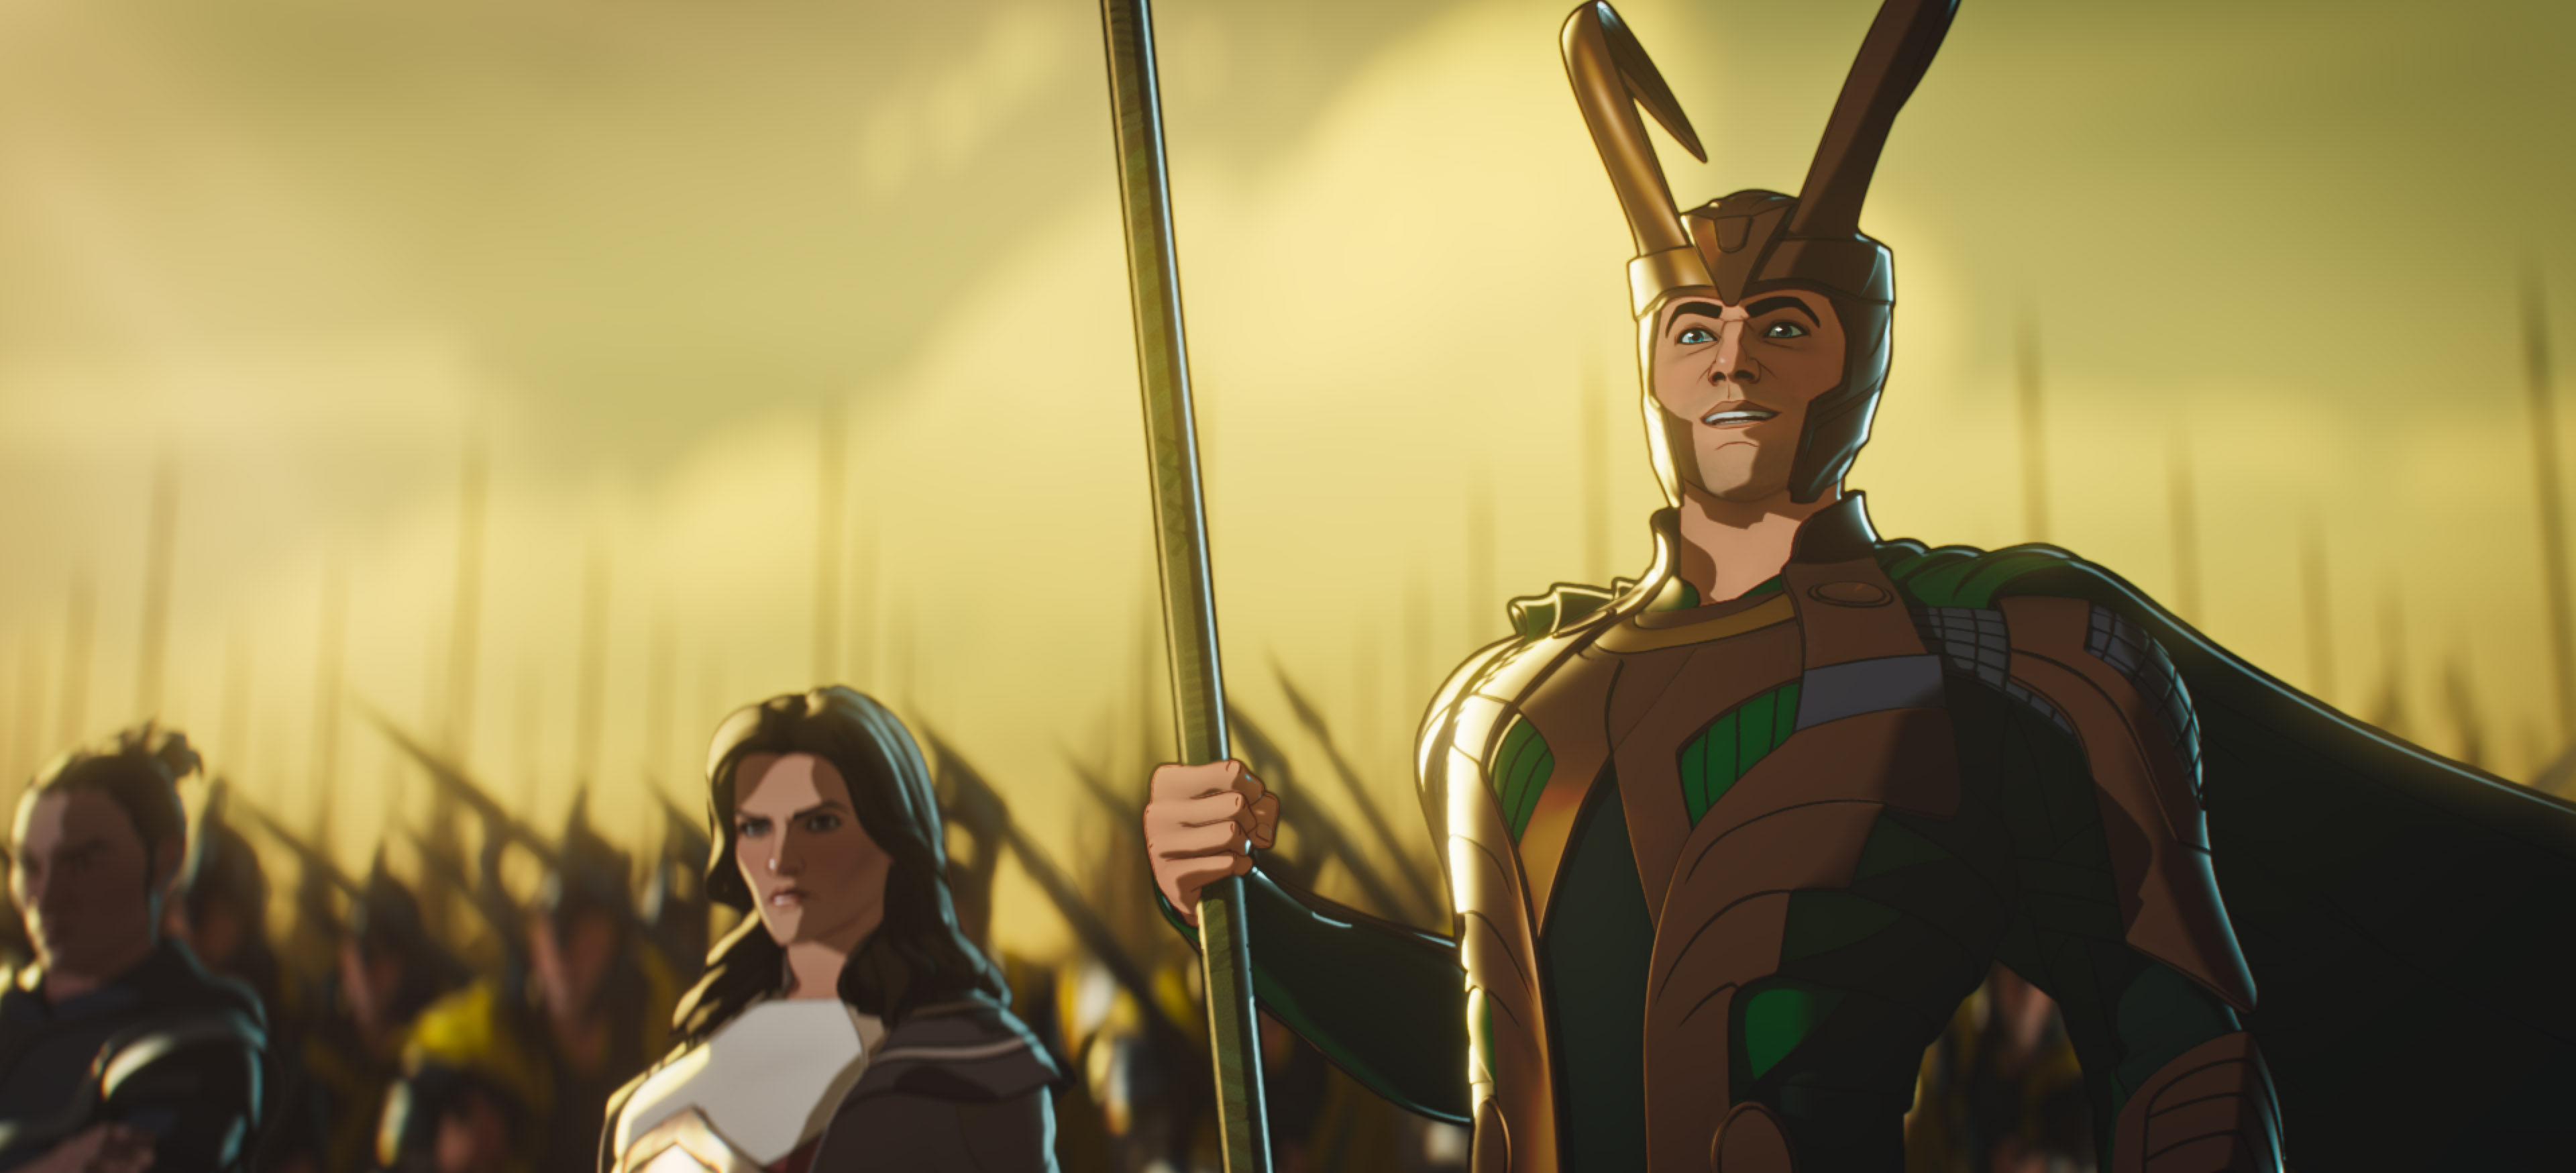 (L-R): Hogun, Lady Sif and Loki in Marvel Studios' WHAT IF…? exclusively on Disney+. ©Marvel Studios 2021. All Rights Reserved.